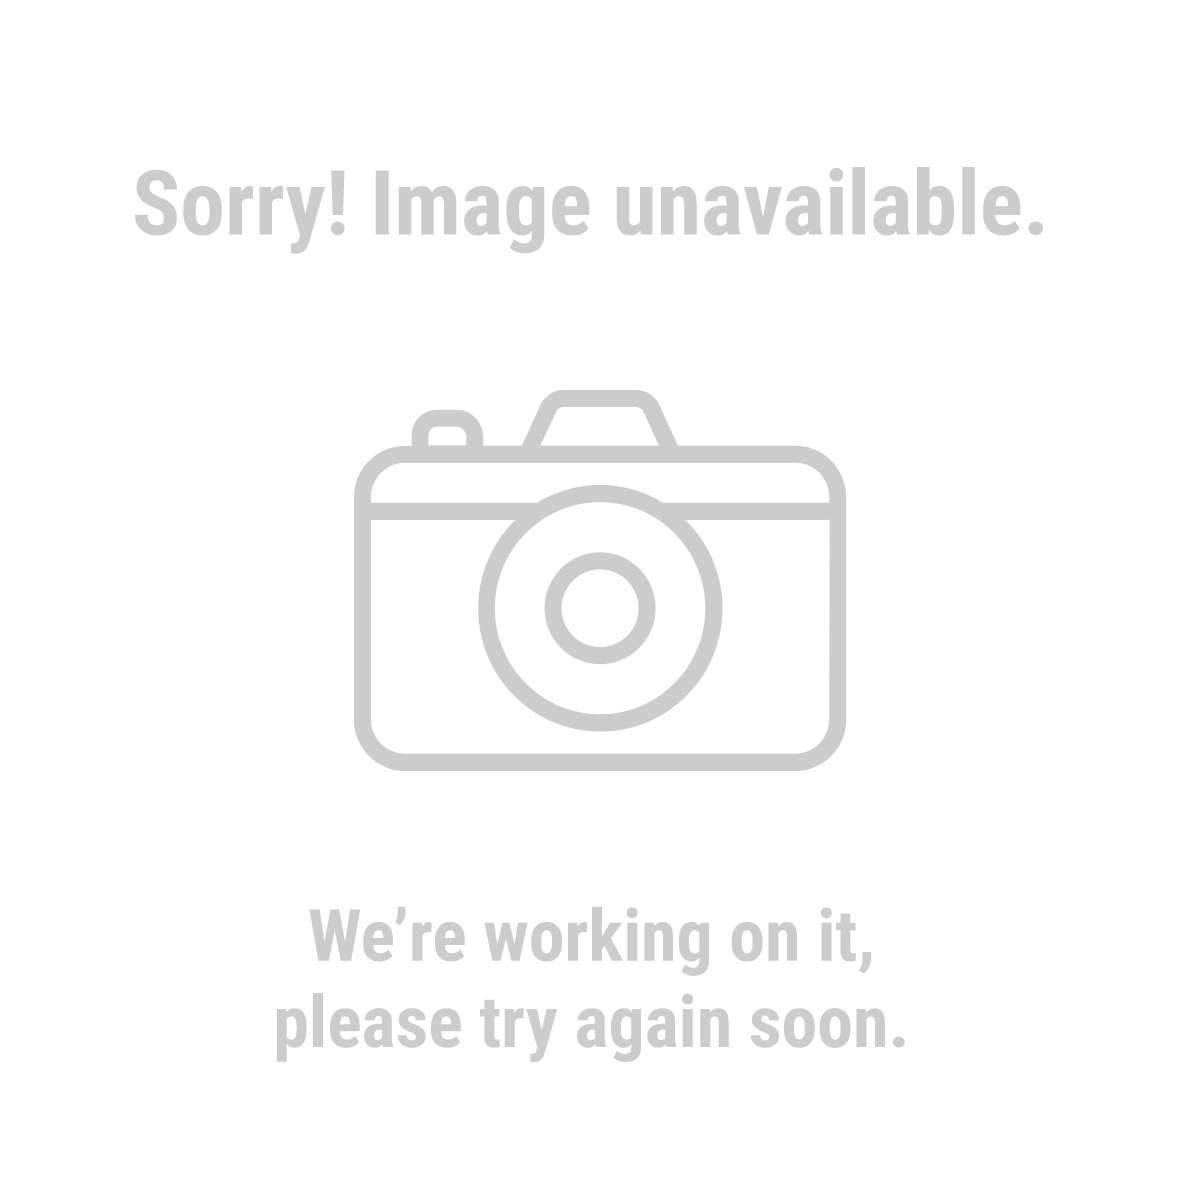 U.S. General 60723 Multipurpose Workbench with Cabinet Light